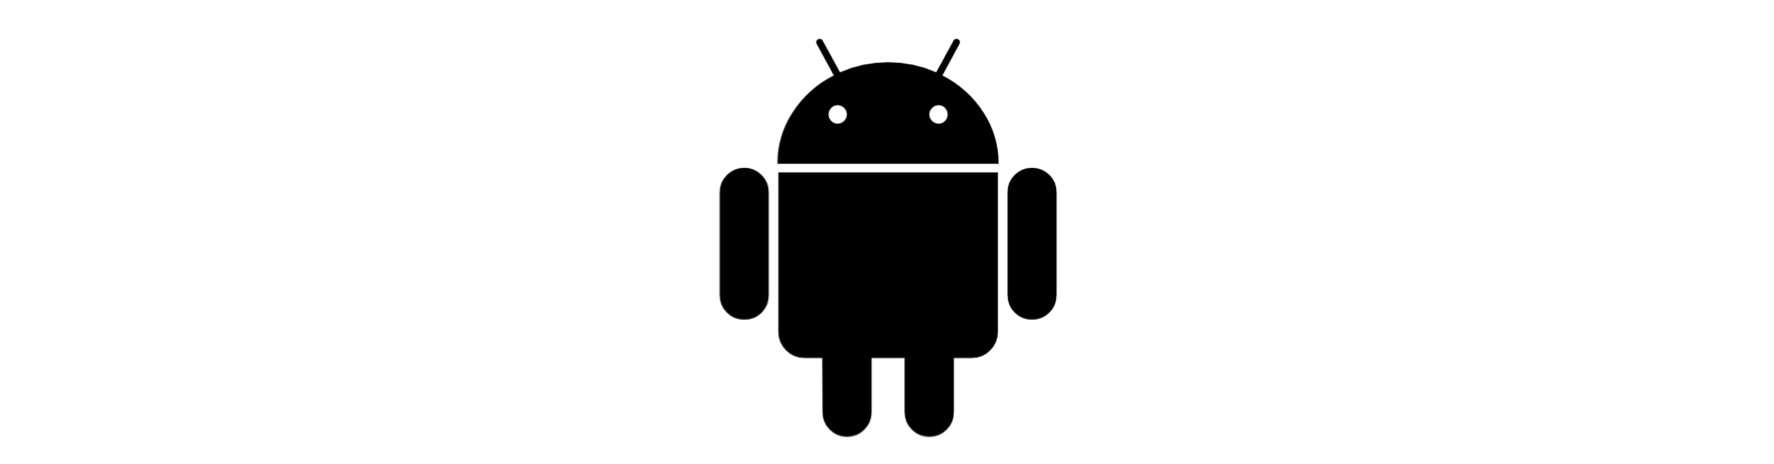 Android - Duo